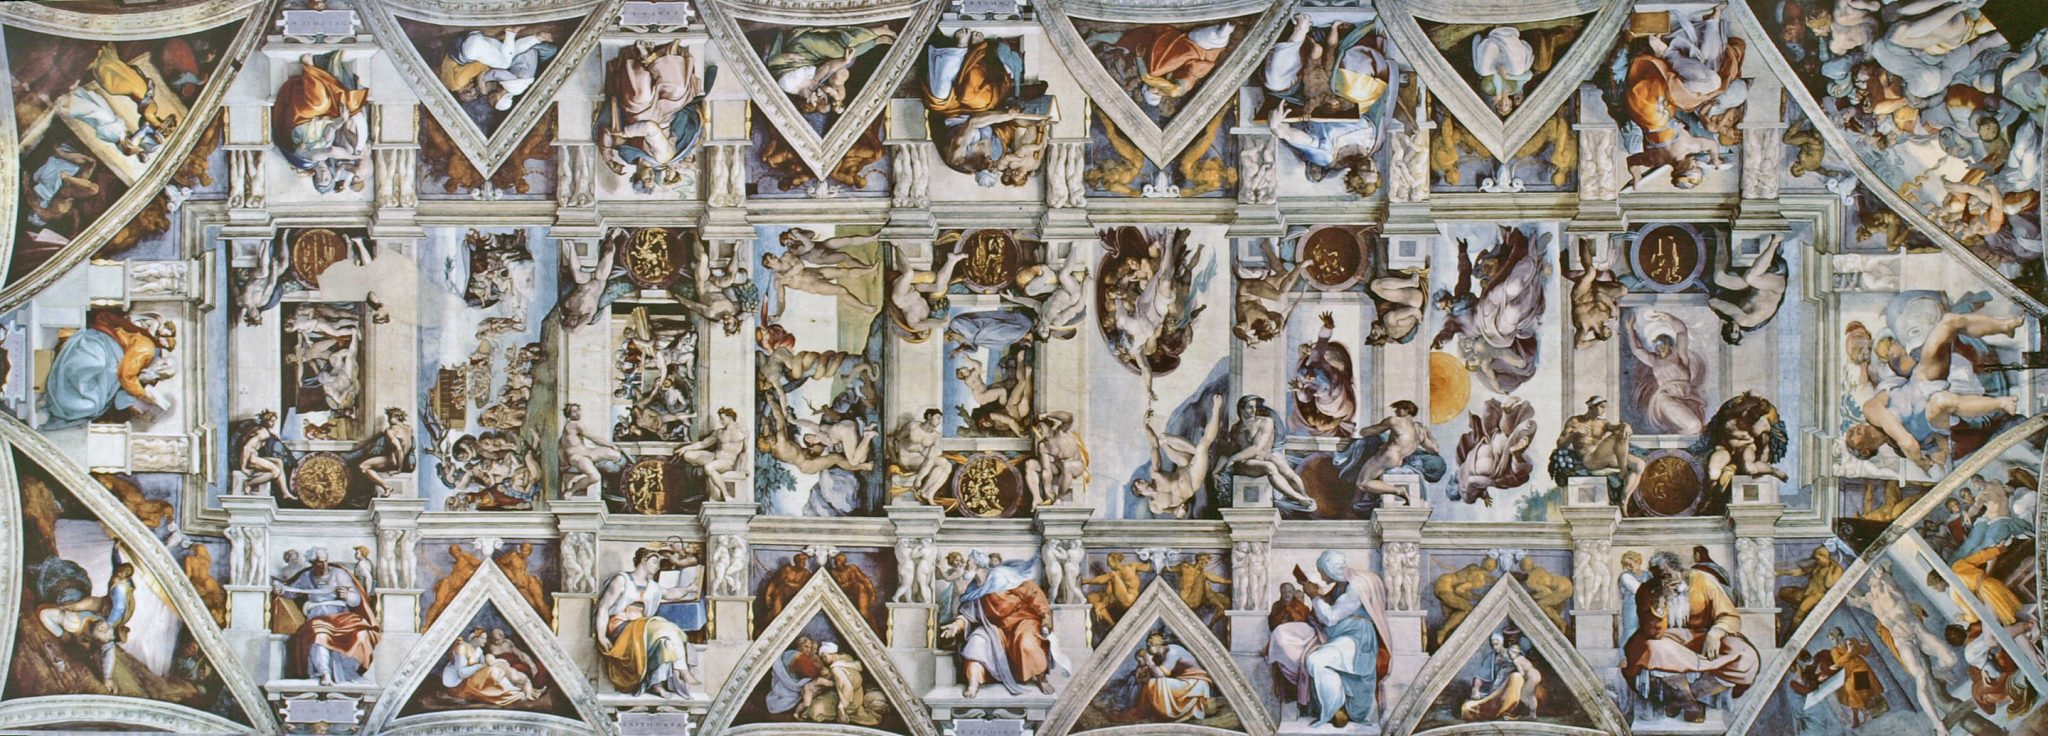 The ceiling of the Sistine Chapel (Via wikipedia)